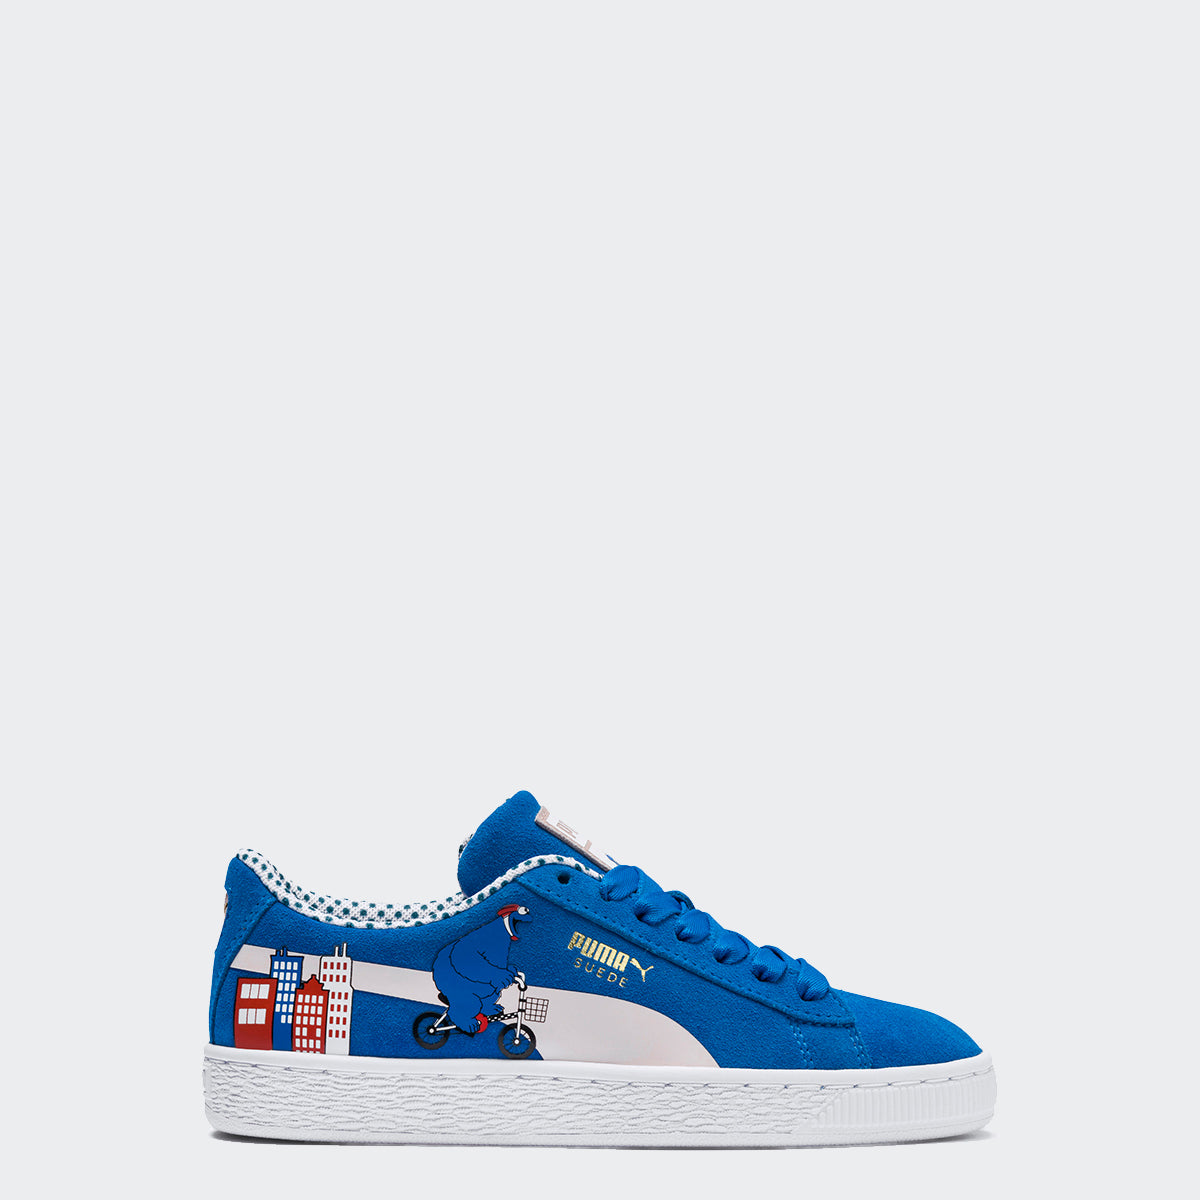 PUMA Sesame Street 50 Suede Cookie Monster Shoes   Chicago